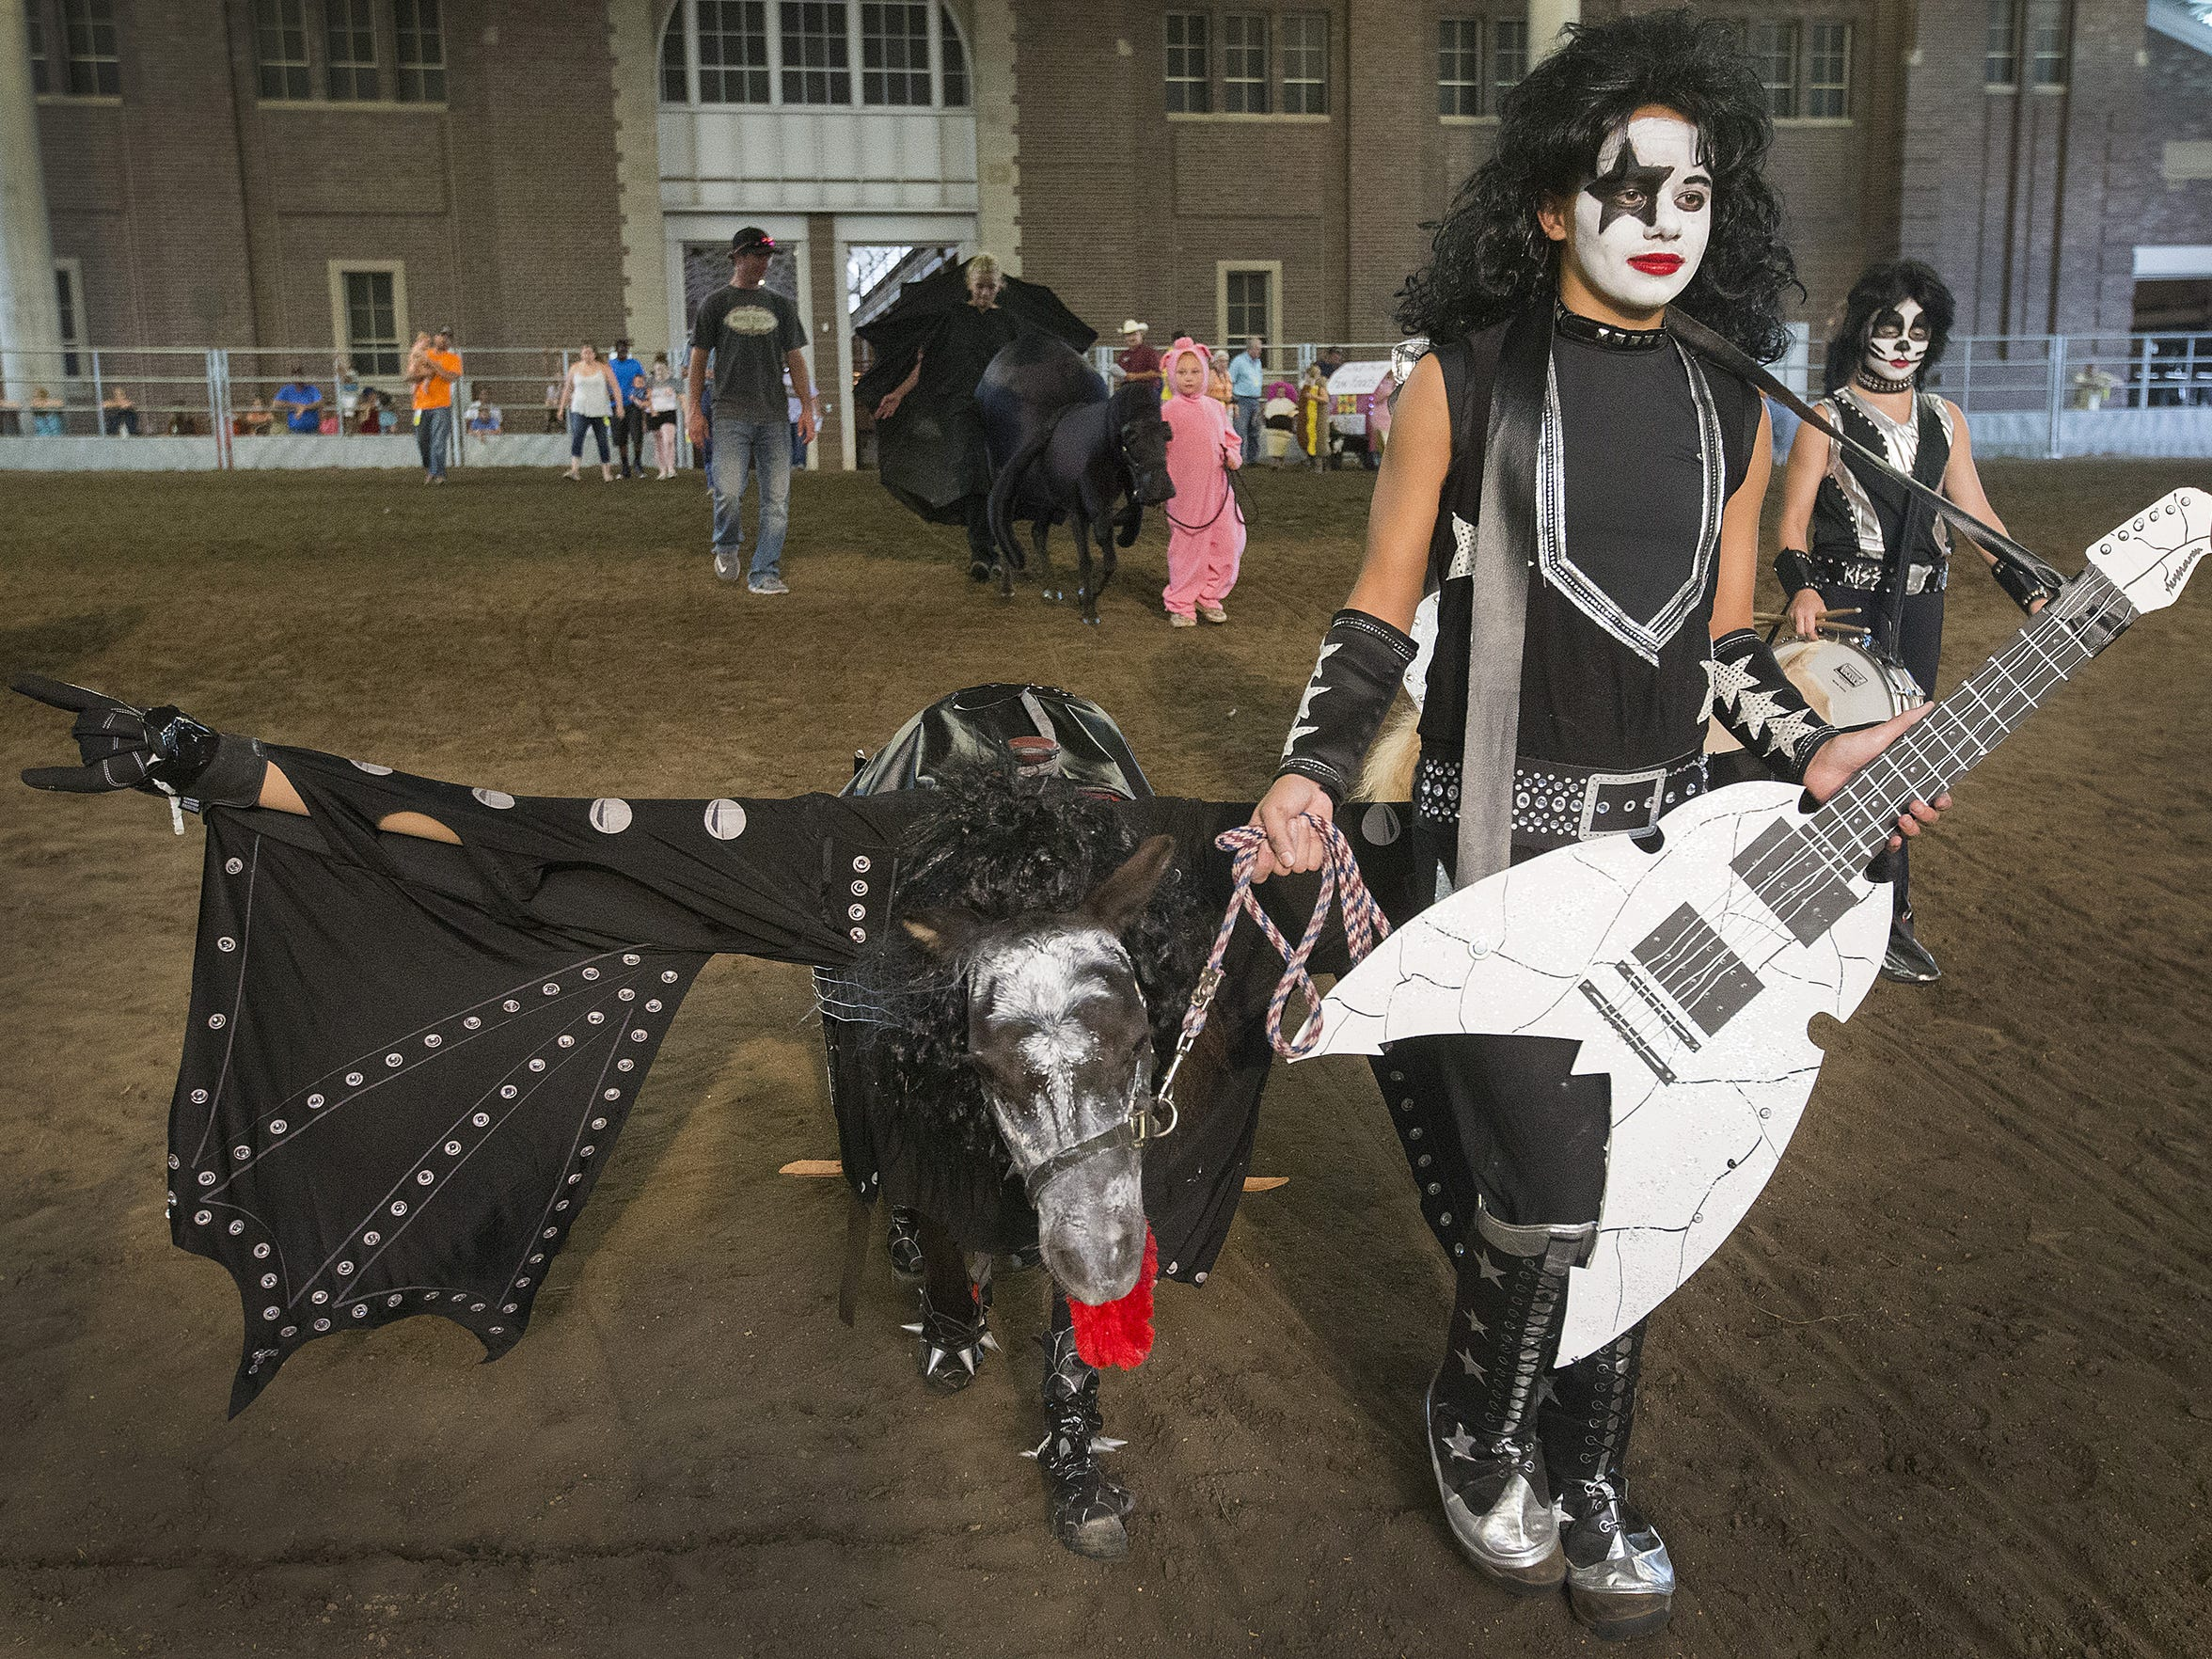 Simply an awesome fair photo: Dressed as Ace Freely from KISS, Joelle Grubbs, 15, of Casey, Iowa, and her sister Quinn, 10, walked their miniature horse, Echo, dressed as Gene Simmons during children's costume class at the horse show in the Richard O. Jacobson Exhibition Center at the Iowa State Fair in Des Moines, Iowa, Sunday, Aug. 16, 2015.